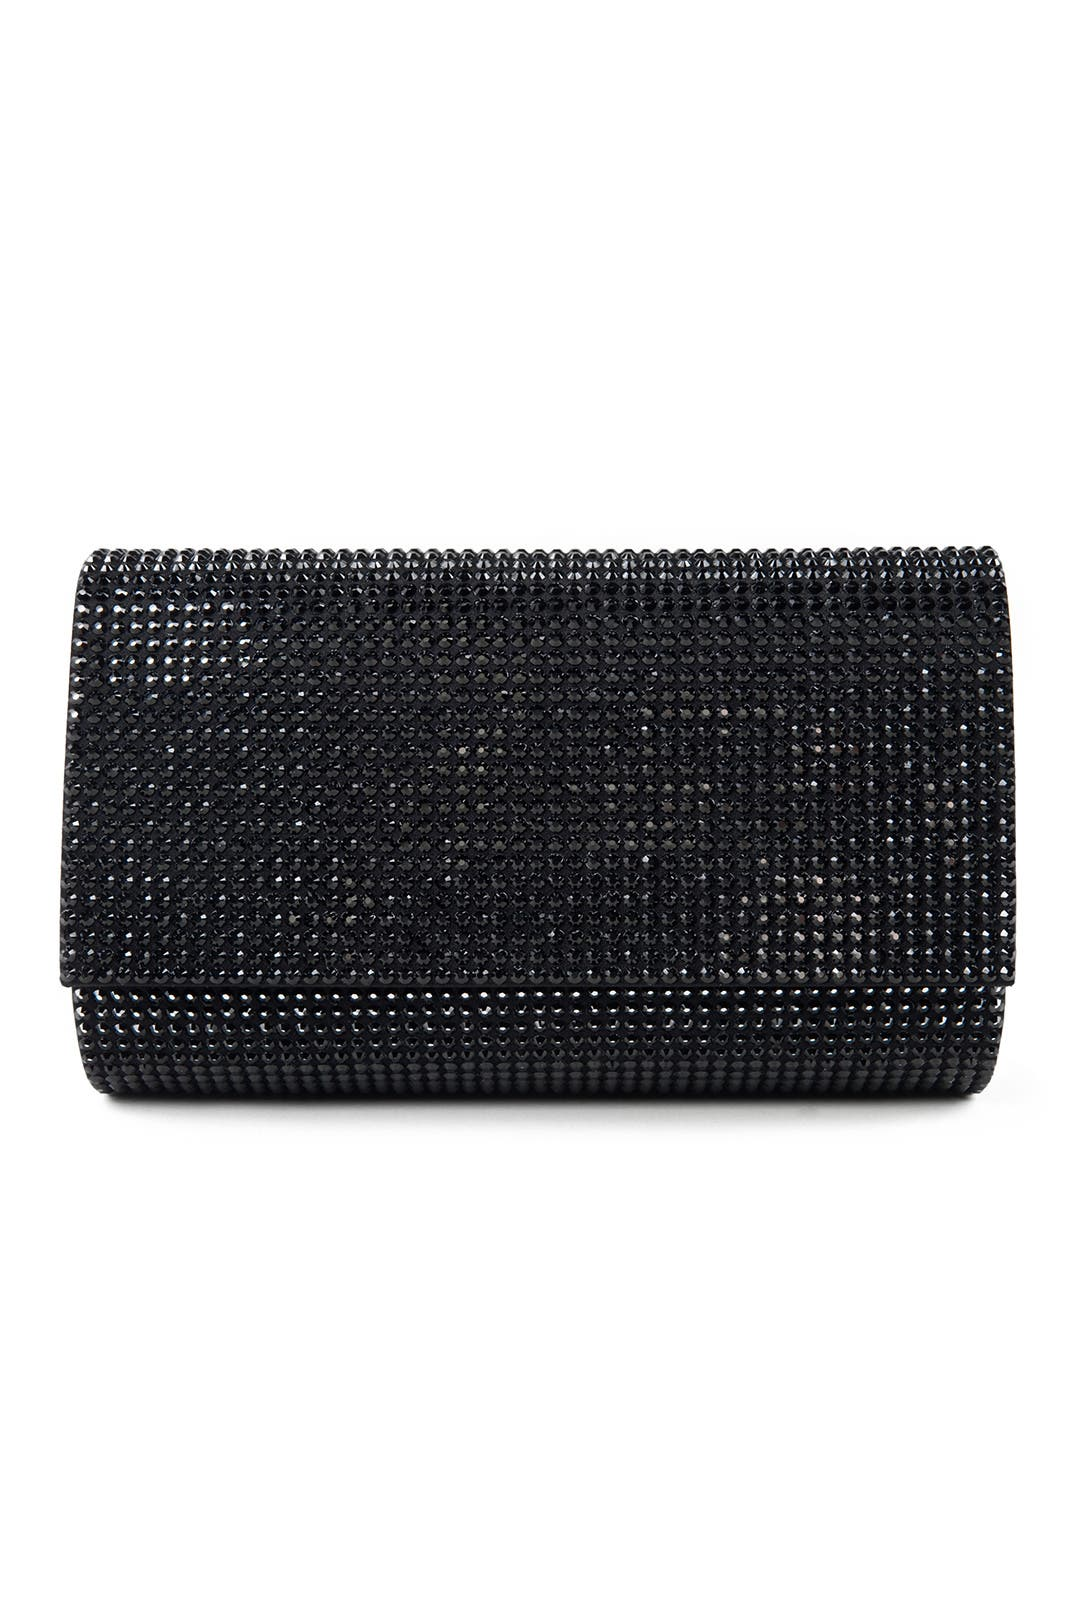 Black Magic Clutch by Judith Leiber